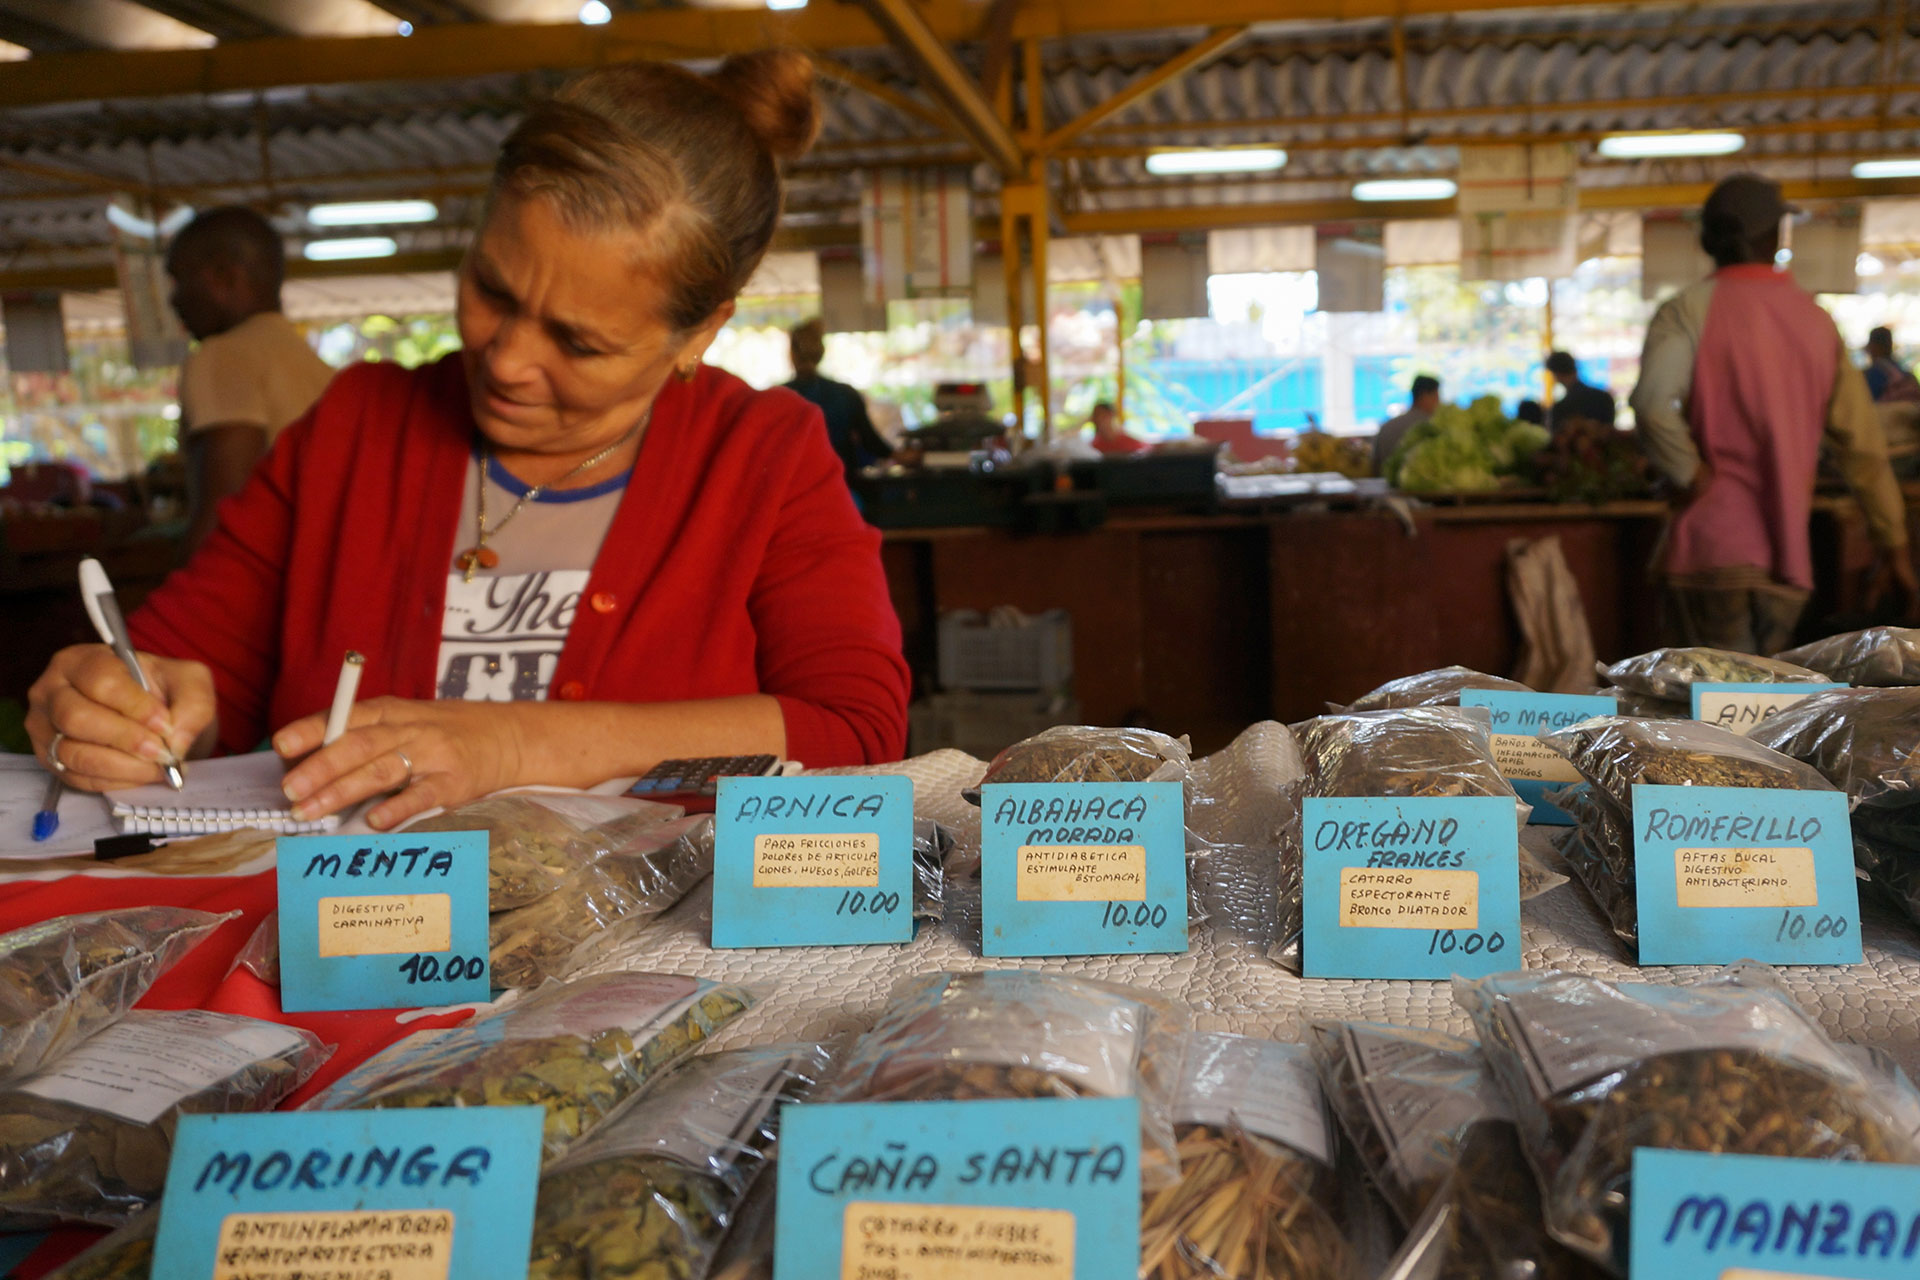 Rosa Maria Leon Castro tends to her traditional medicine stand at an agricultural market March 7, 2019, in the Vedado neighborhood of Havana, Cuba. Markets like these can be found throughout the island, but often have steep prices. (Photo by Emily Mitchell/GroundTruth)